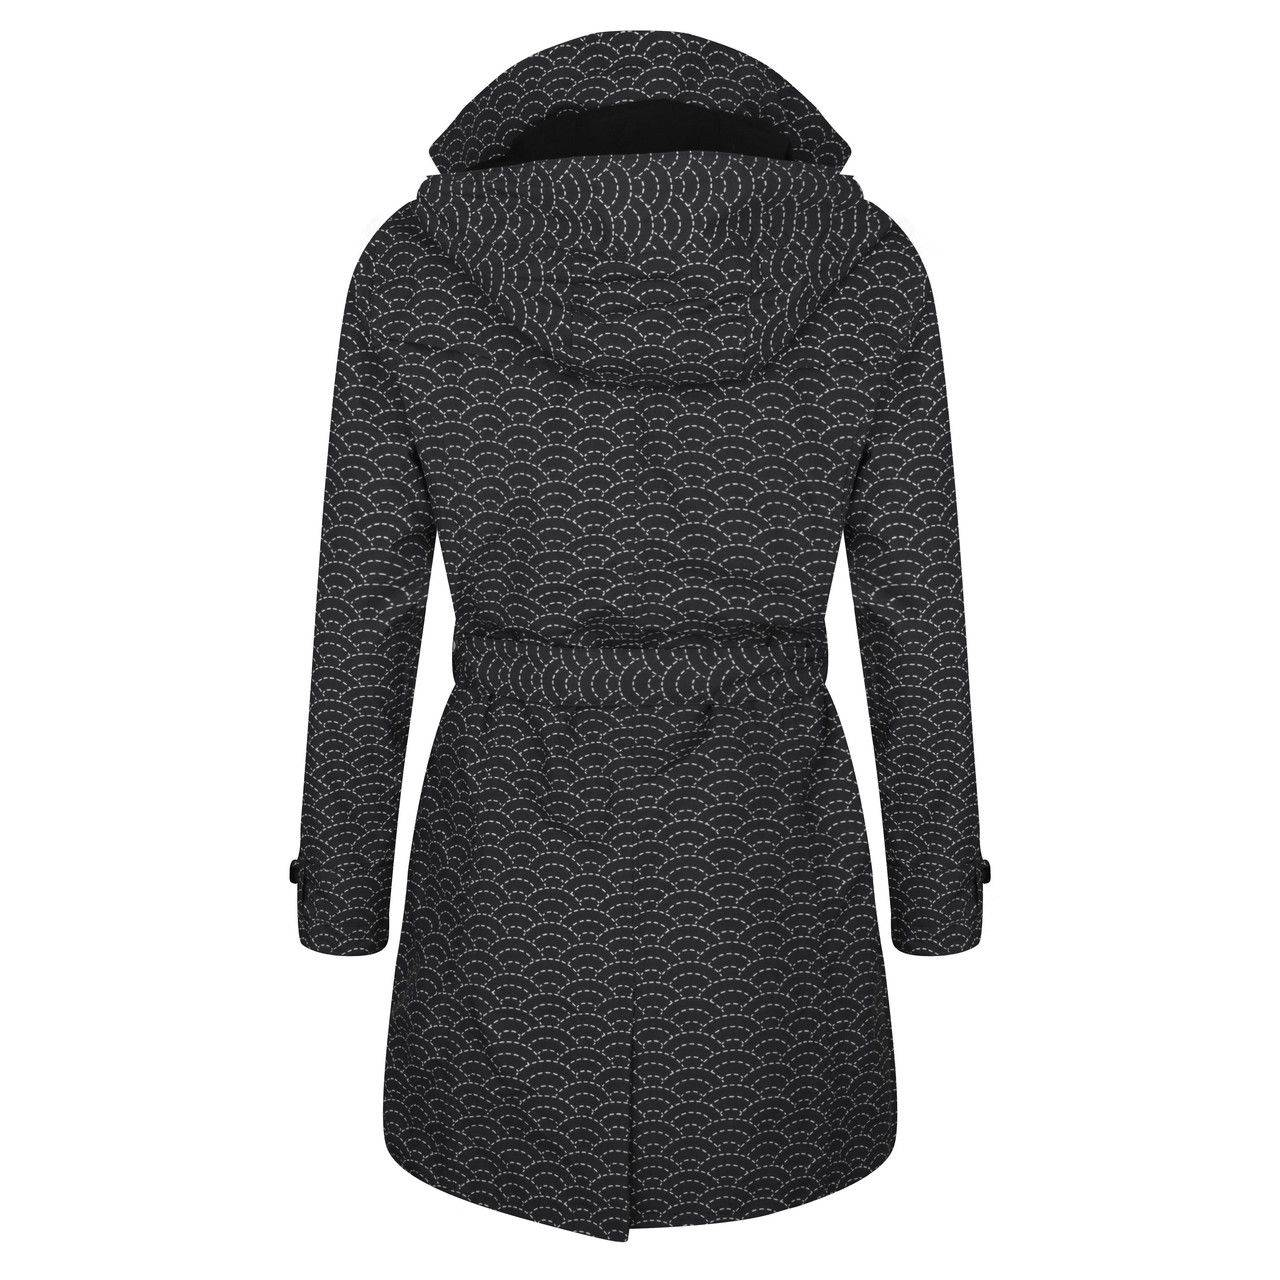 Happy Rainy Days Trench Coat, Black with White Pattern, Color: Black/White Pattern, Size: S image 2